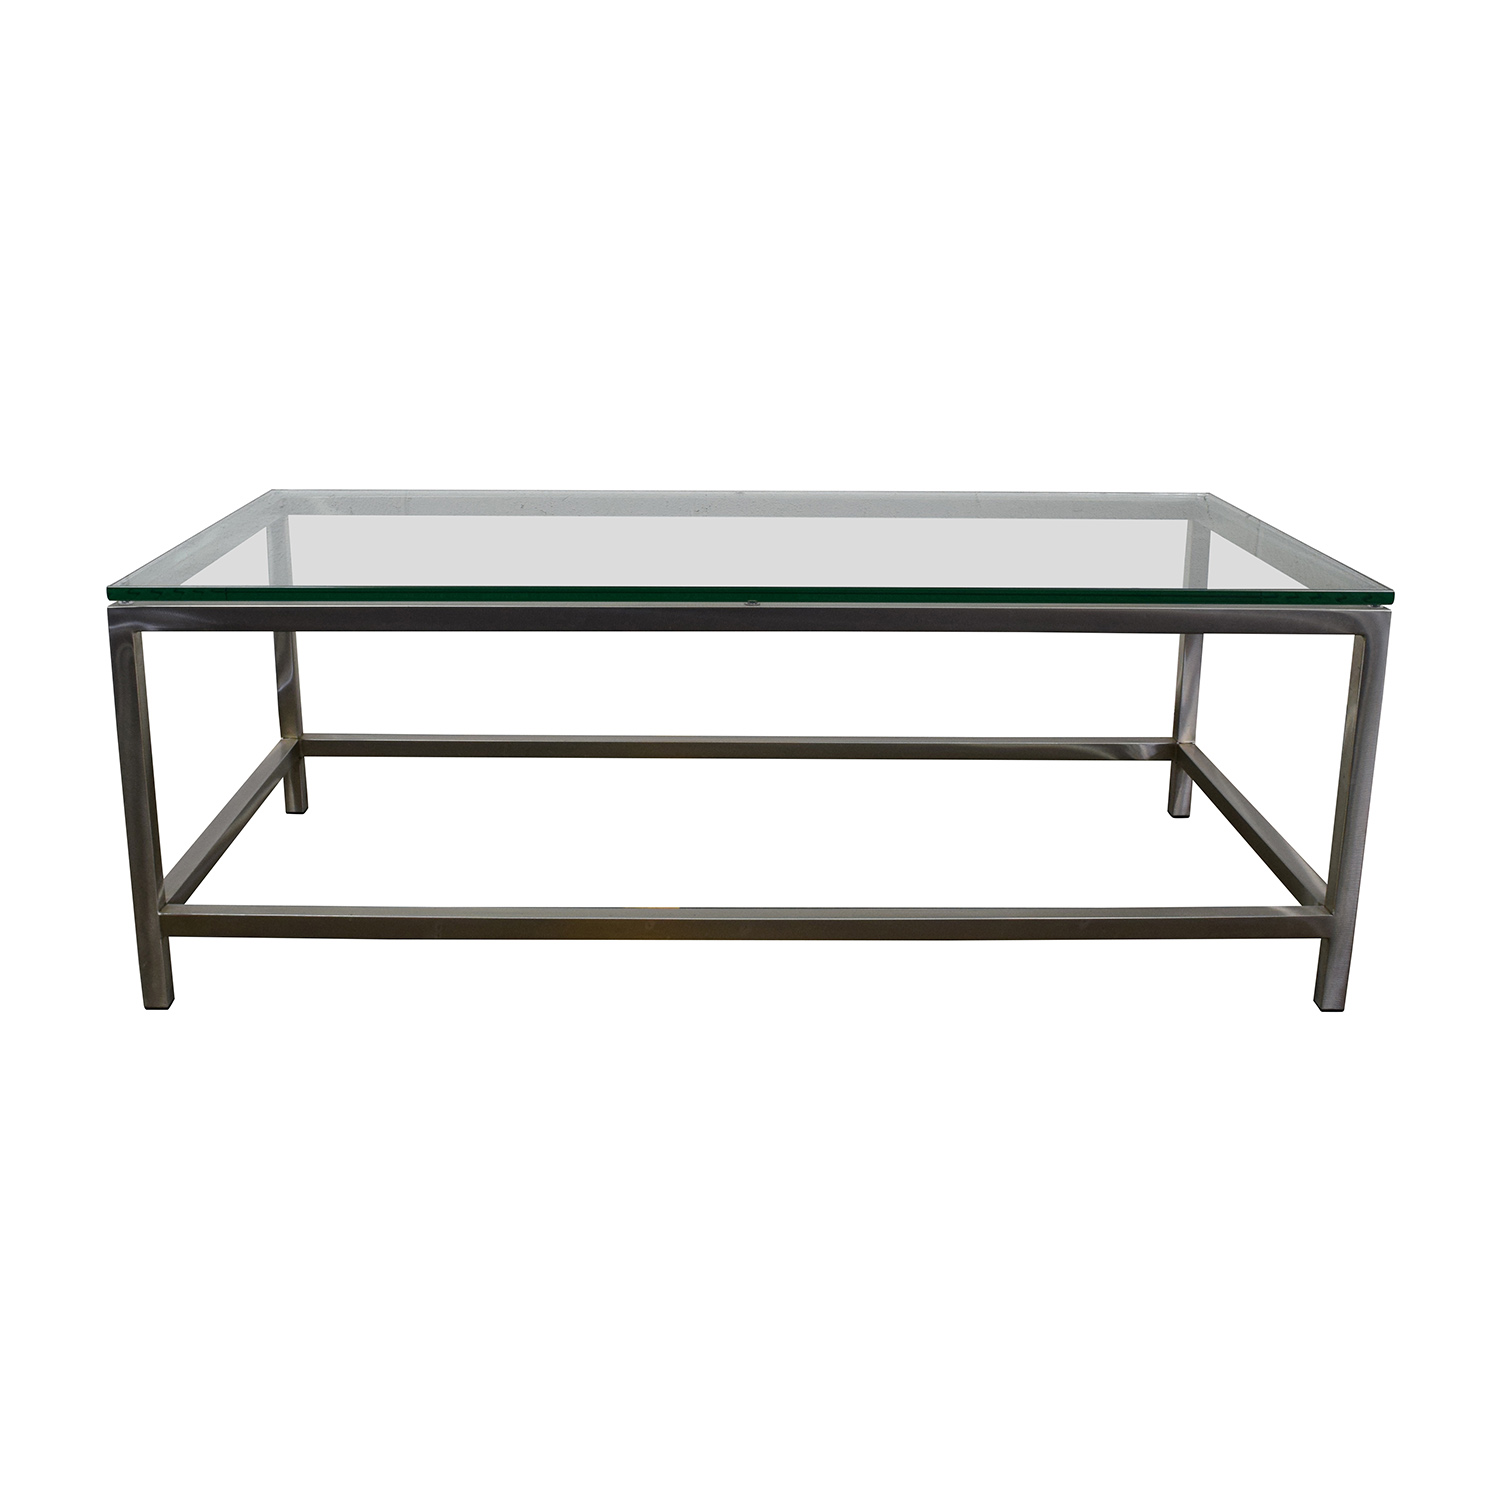 OFF Glass Top with Wood Base Coffee Table Tables